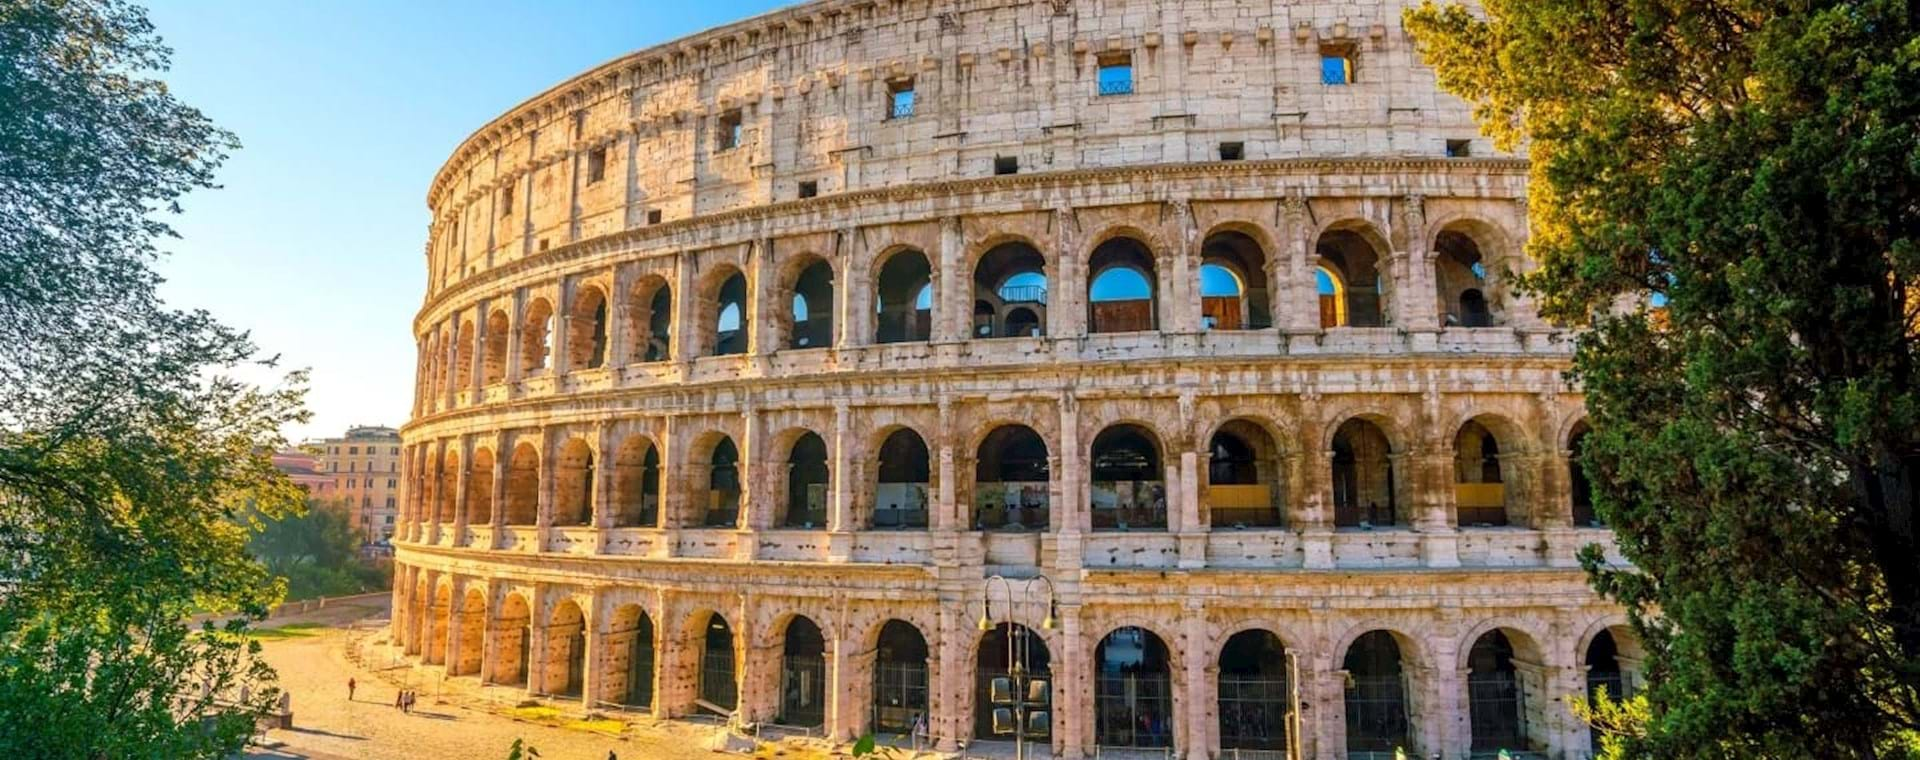 Skip The Line Colosseum & Roman Forum Tour Tickets